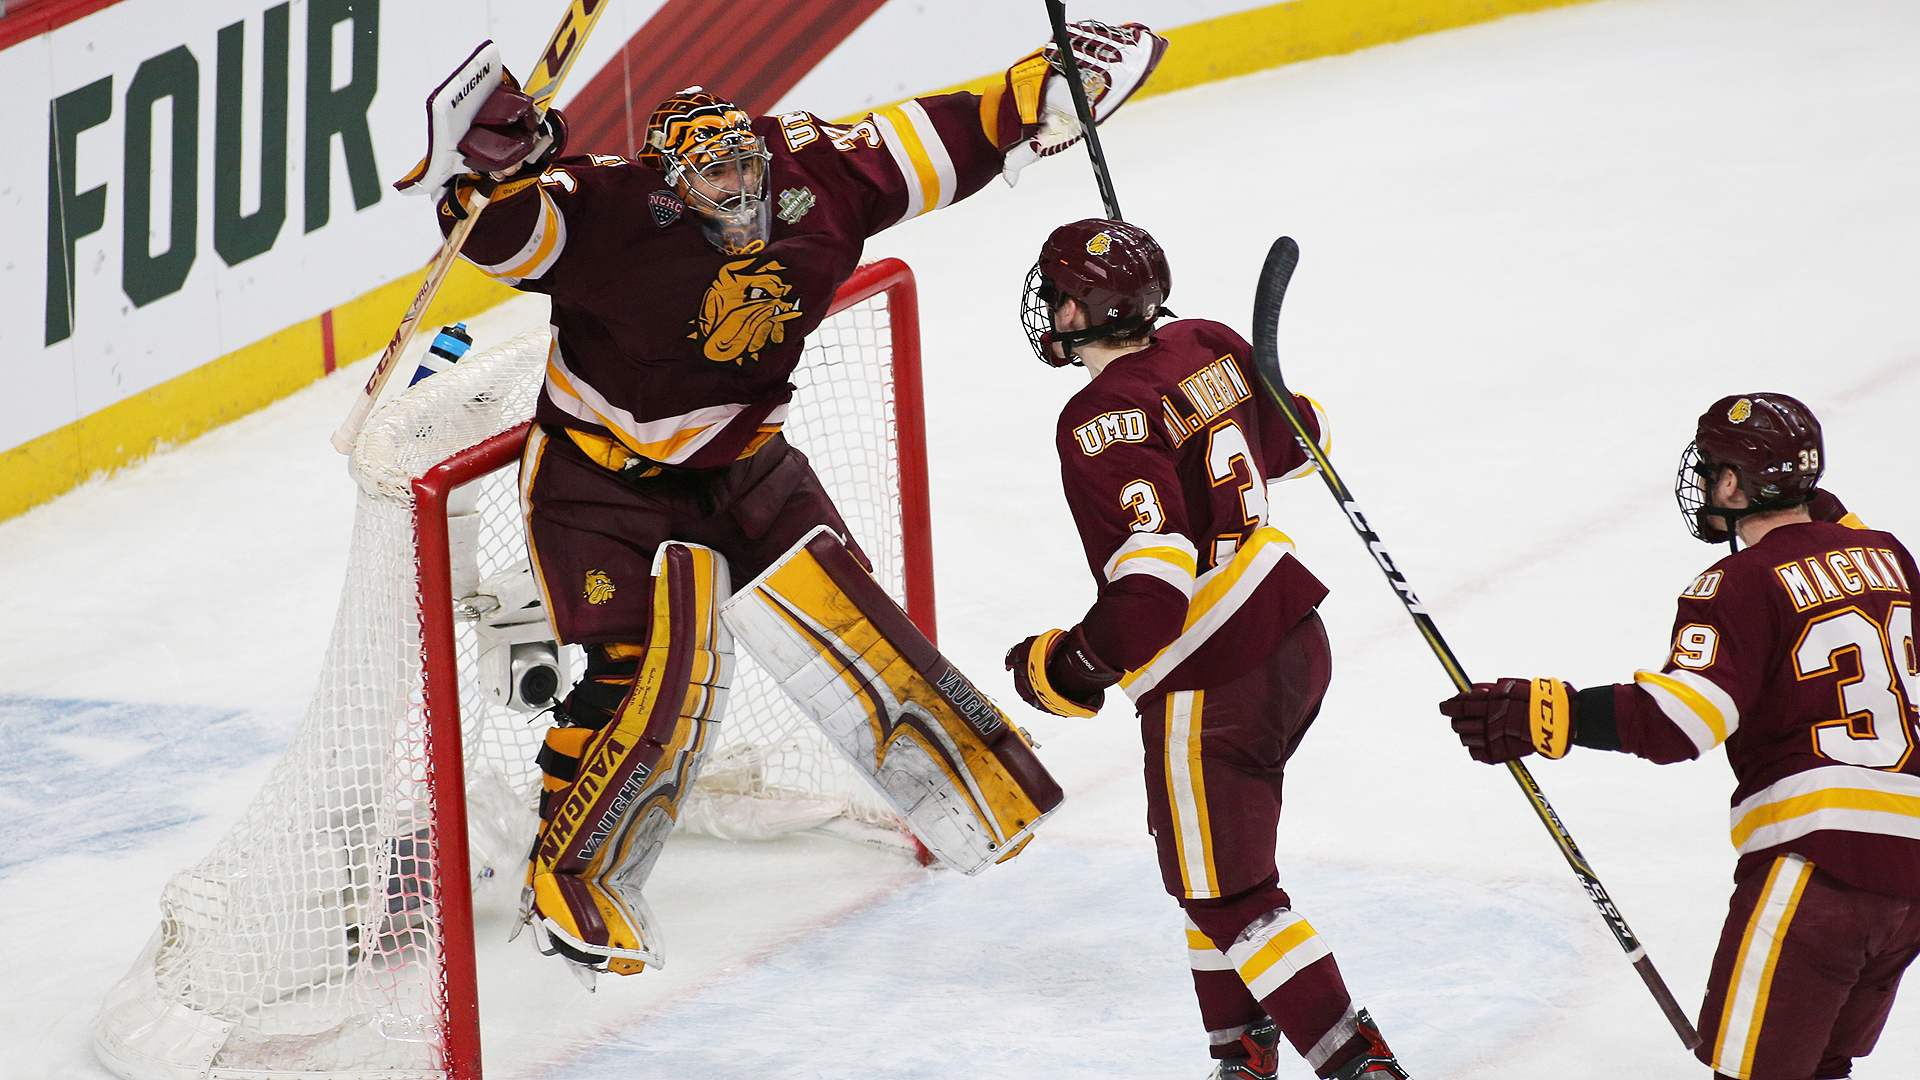 SHEPARD NAMED UMD'S MOST VALUABLE PLAYER; MACKAY TO ...